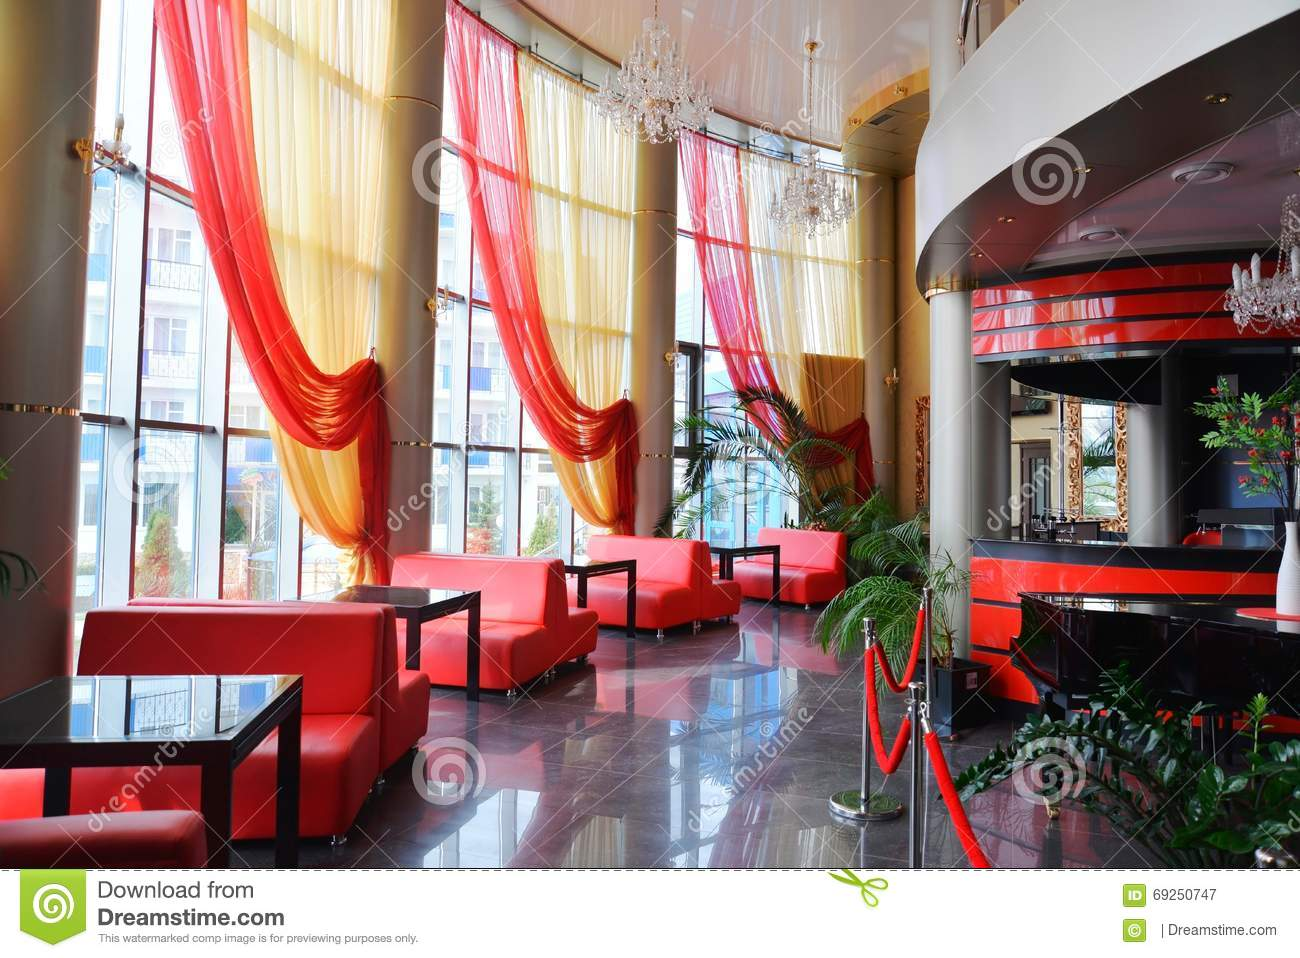 Cafe, Bar An Interior, Without People Stock Image - Image of club ...